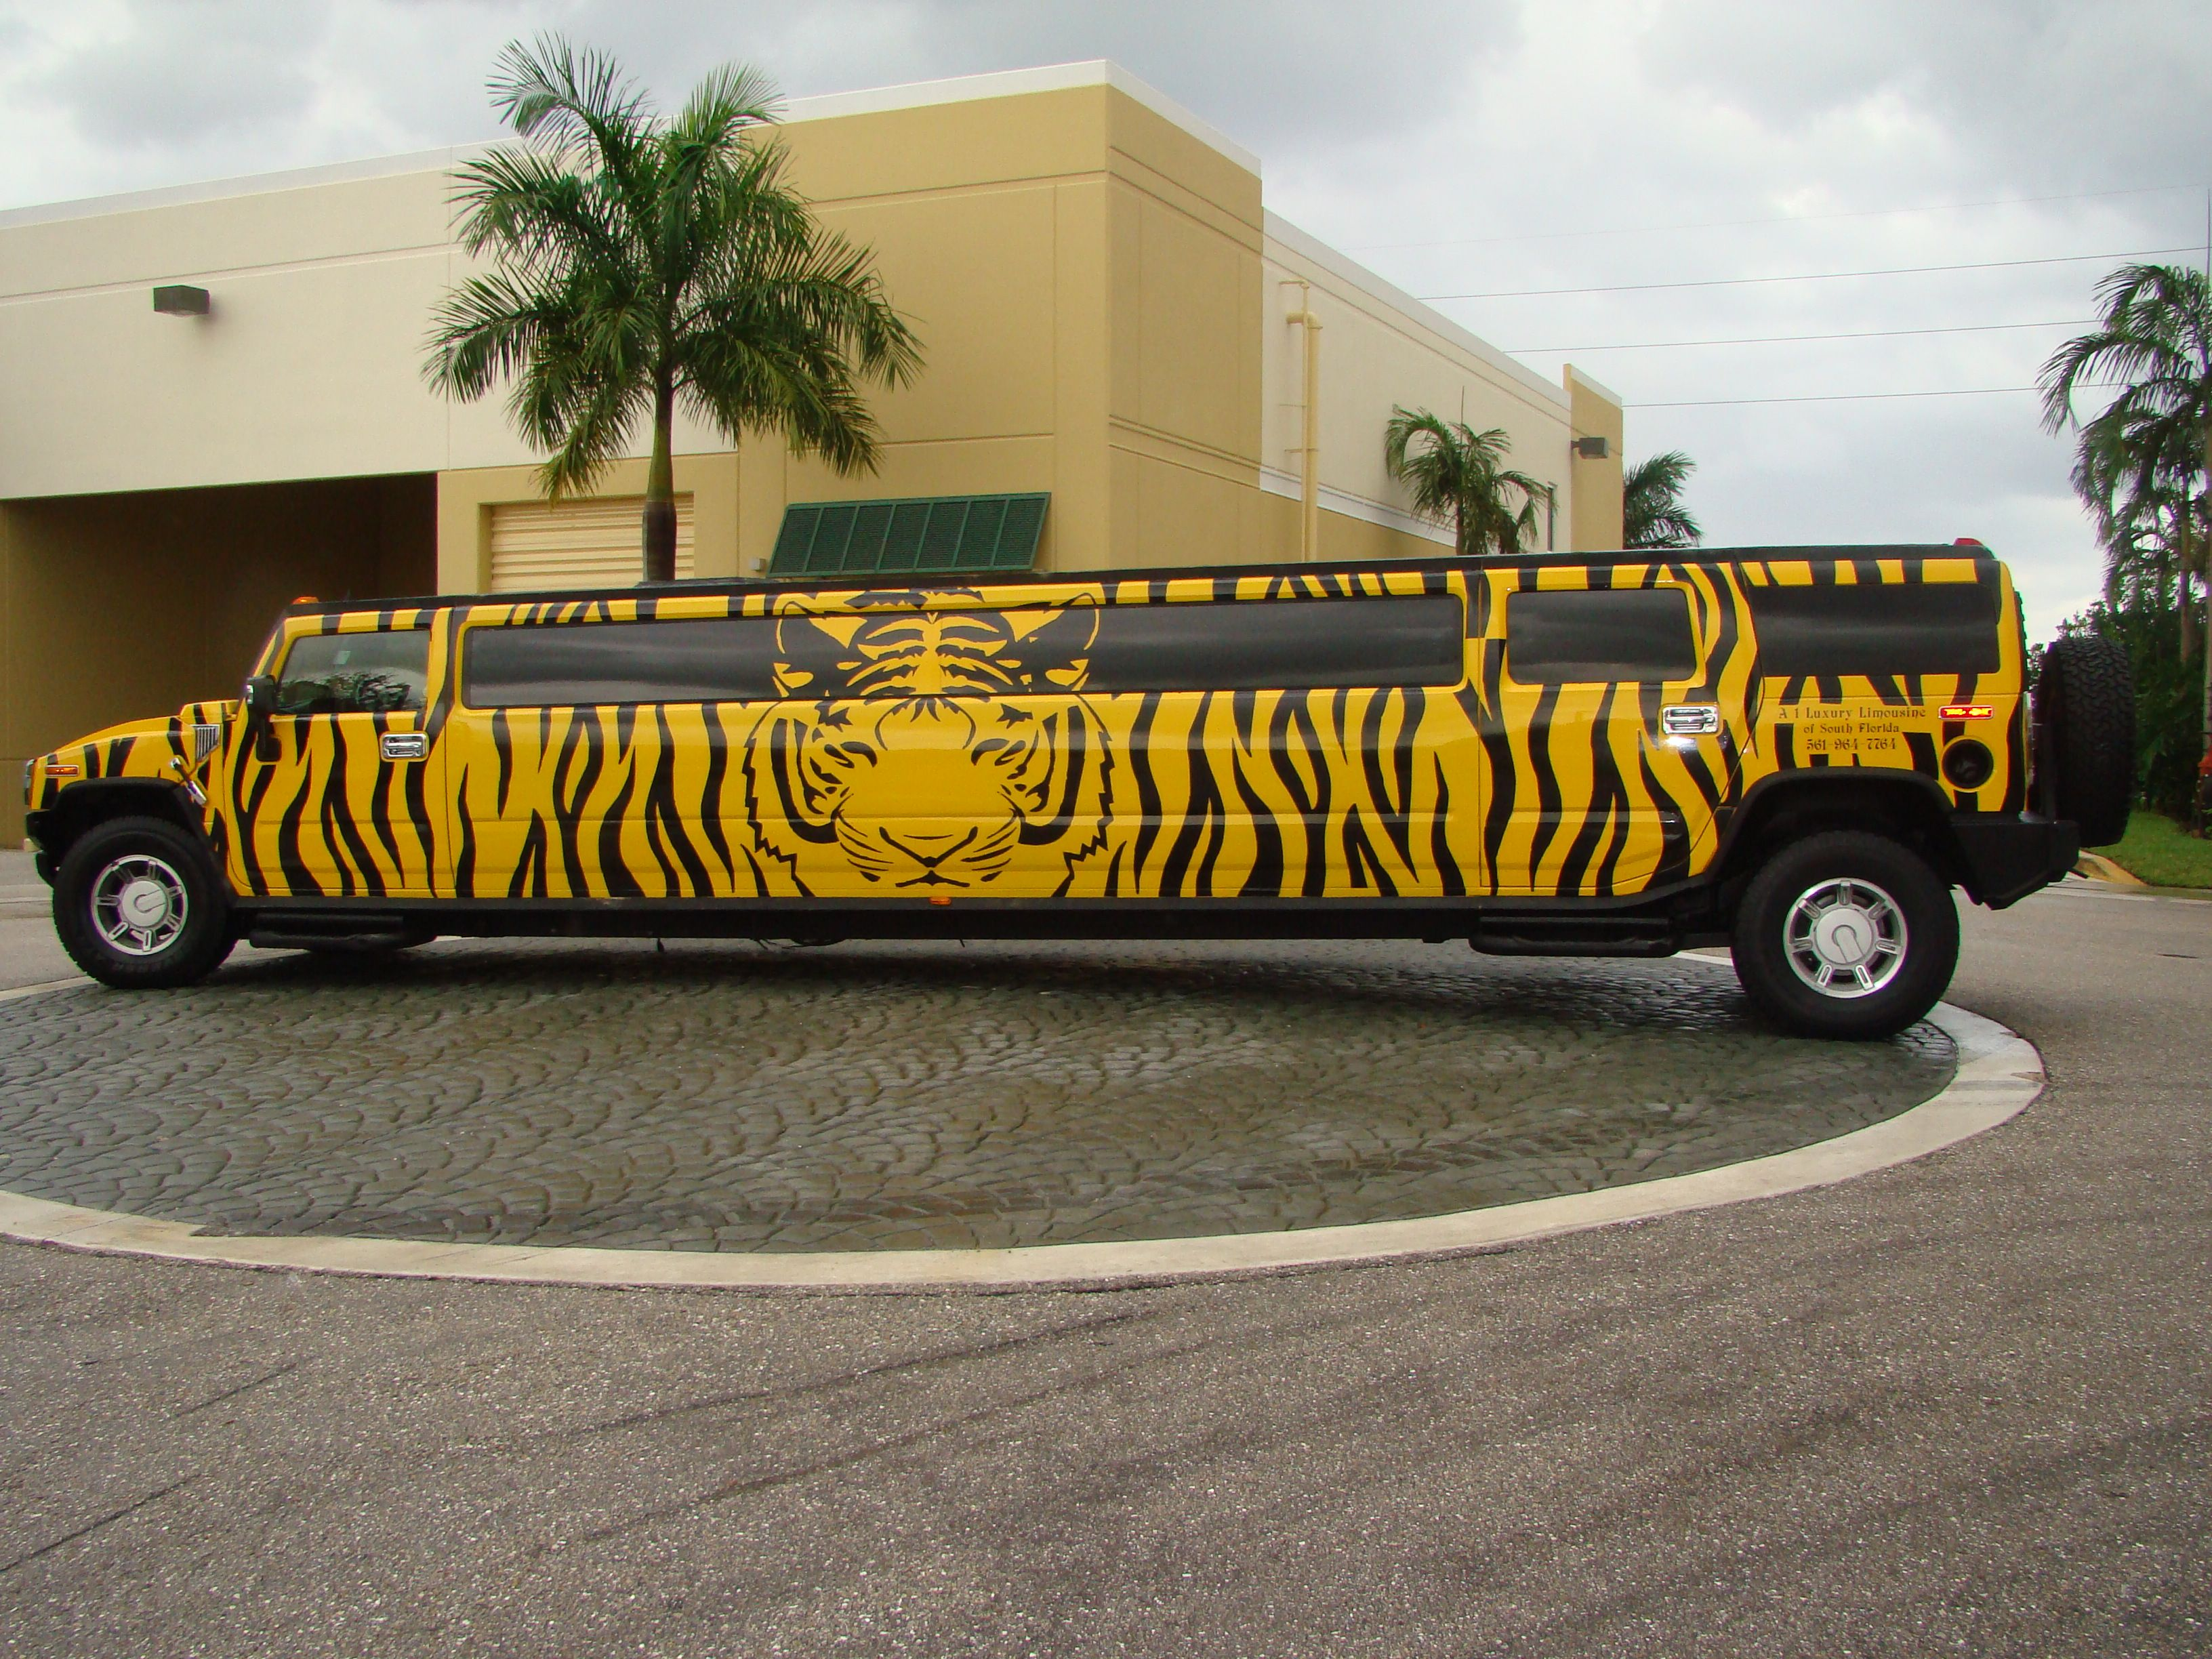 Tiger Hummer Limo I just stumbled upon this mind boggling fancy